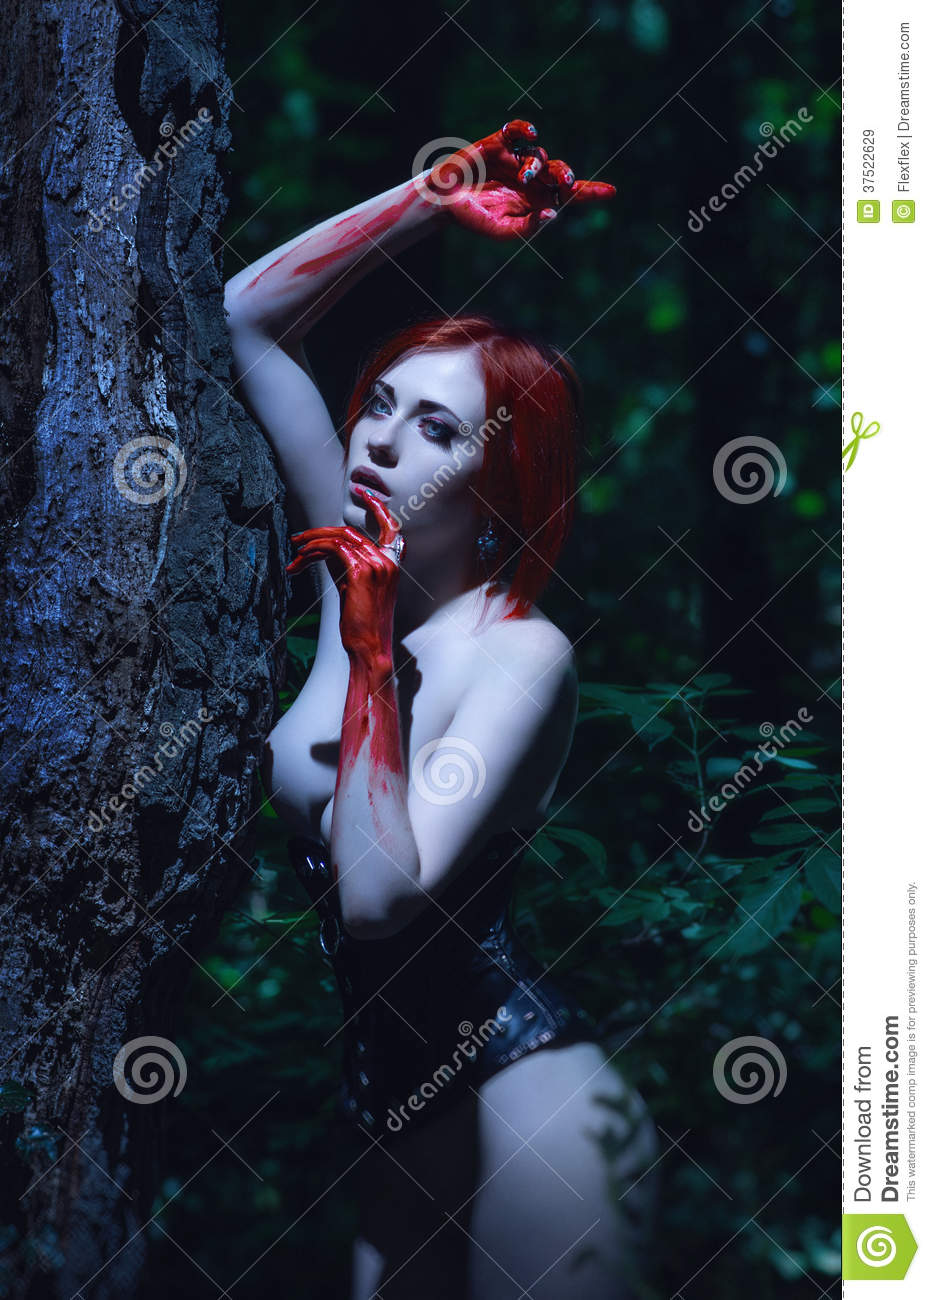 Sexy nude vampire women remarkable